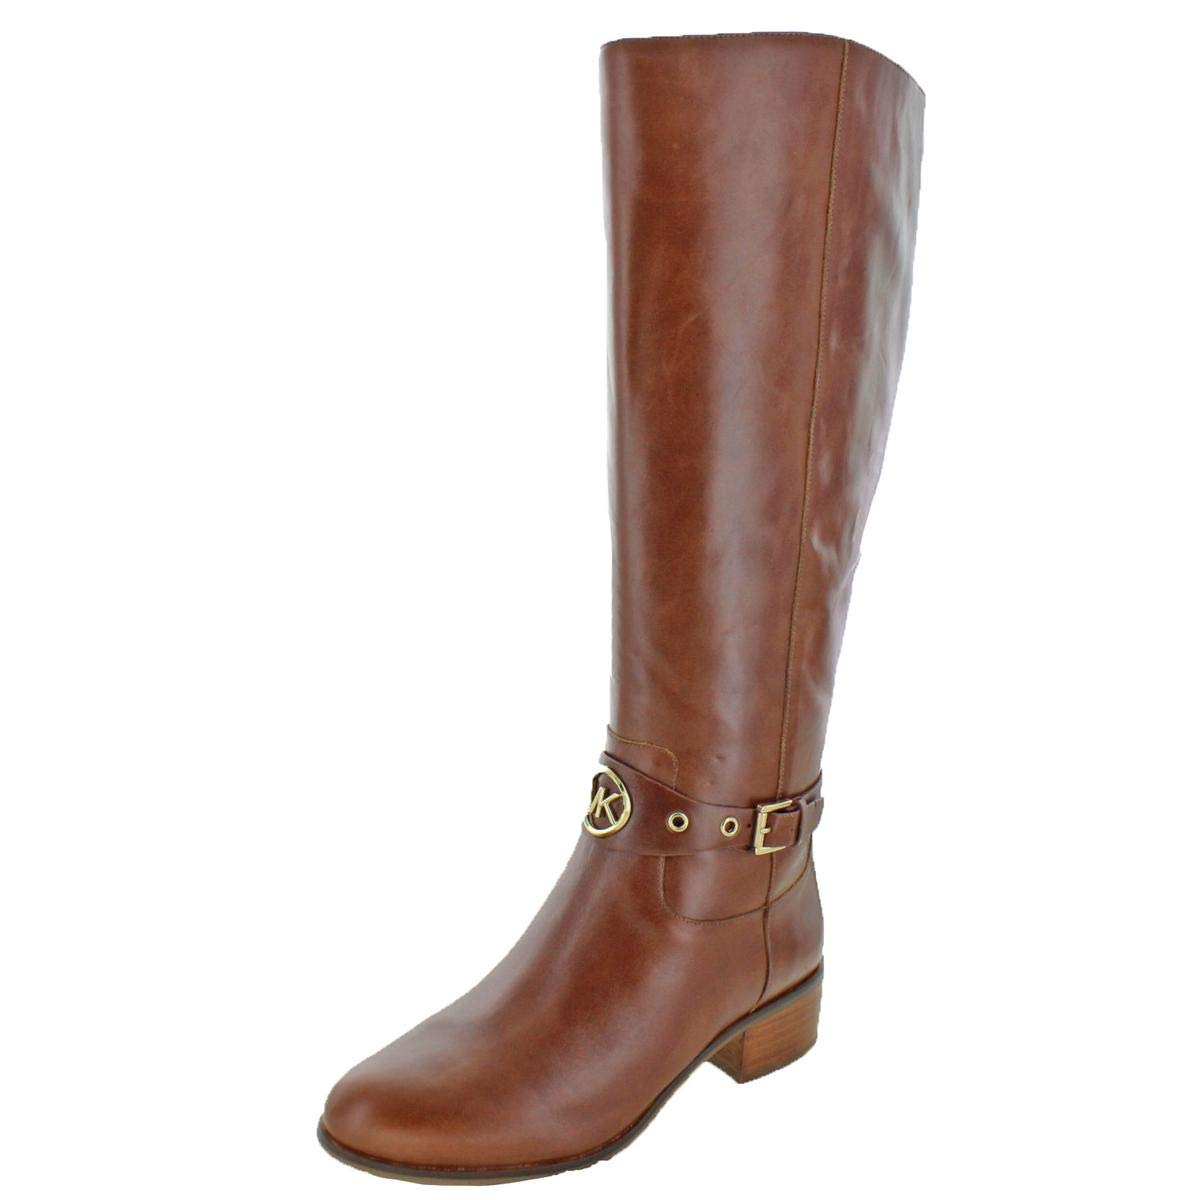 be8b87f354d32 MICHAEL Michael Kors Women's Heather Leather Knee-High Boots Brown Size 11